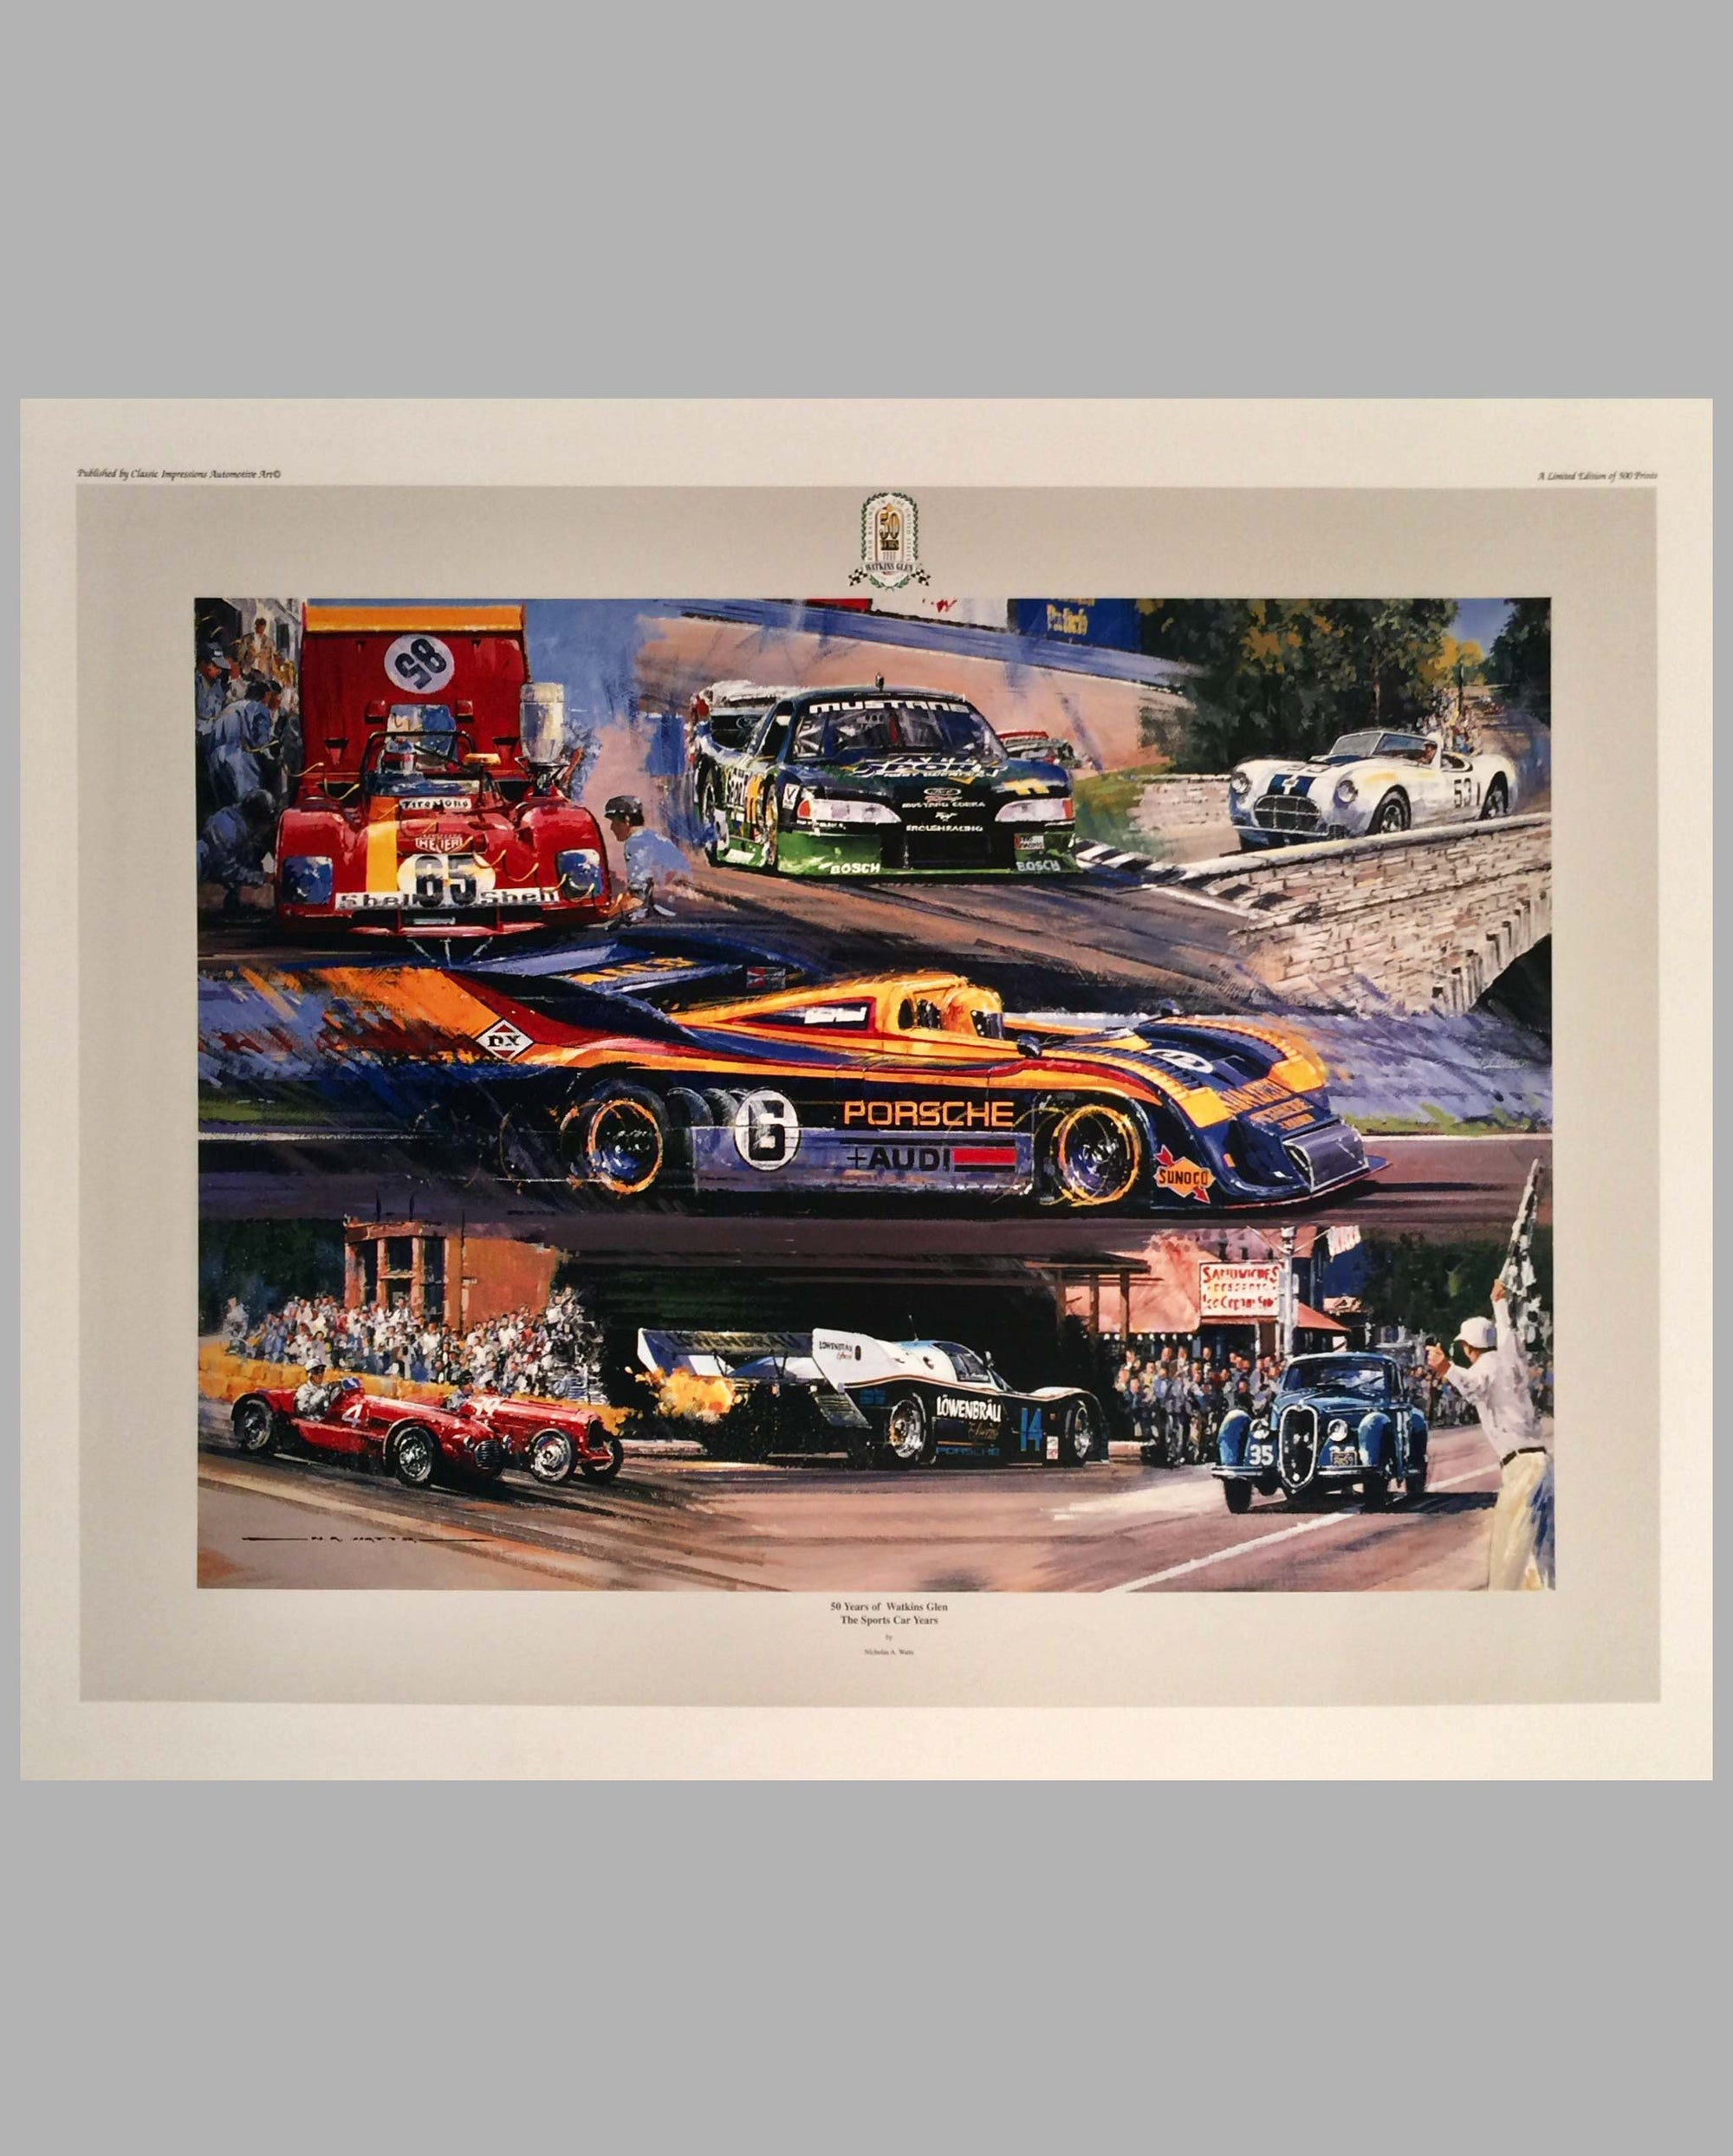 50 Years of Watkins Glen - The Sports Car Years print by Nicholas Watts, 1998